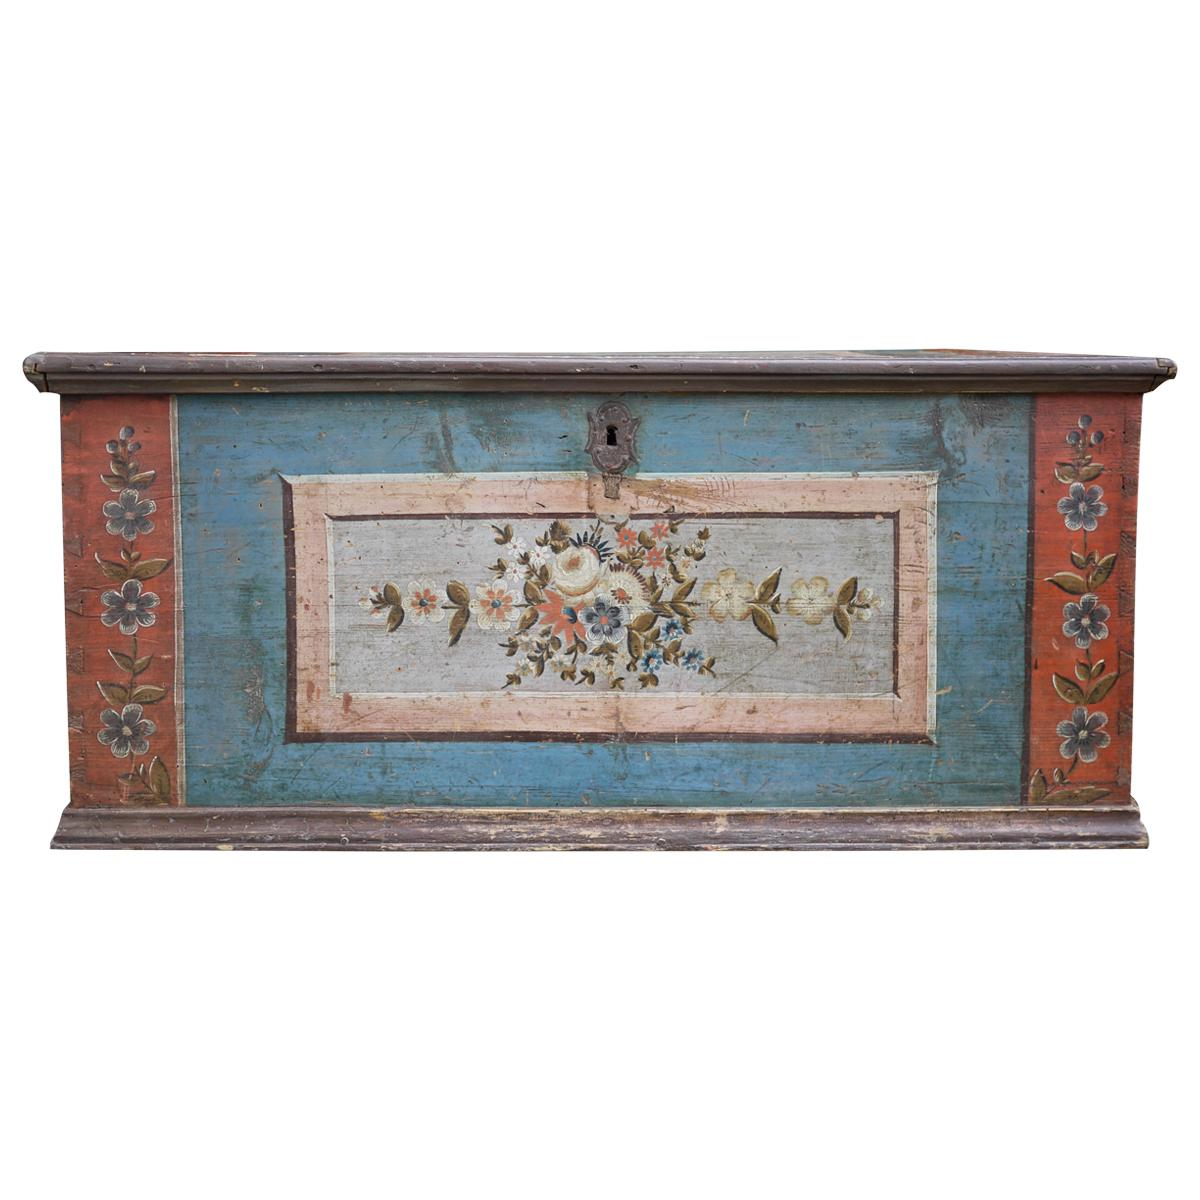 19th Century Blue Floral Painted Blanket Chest, European Alps